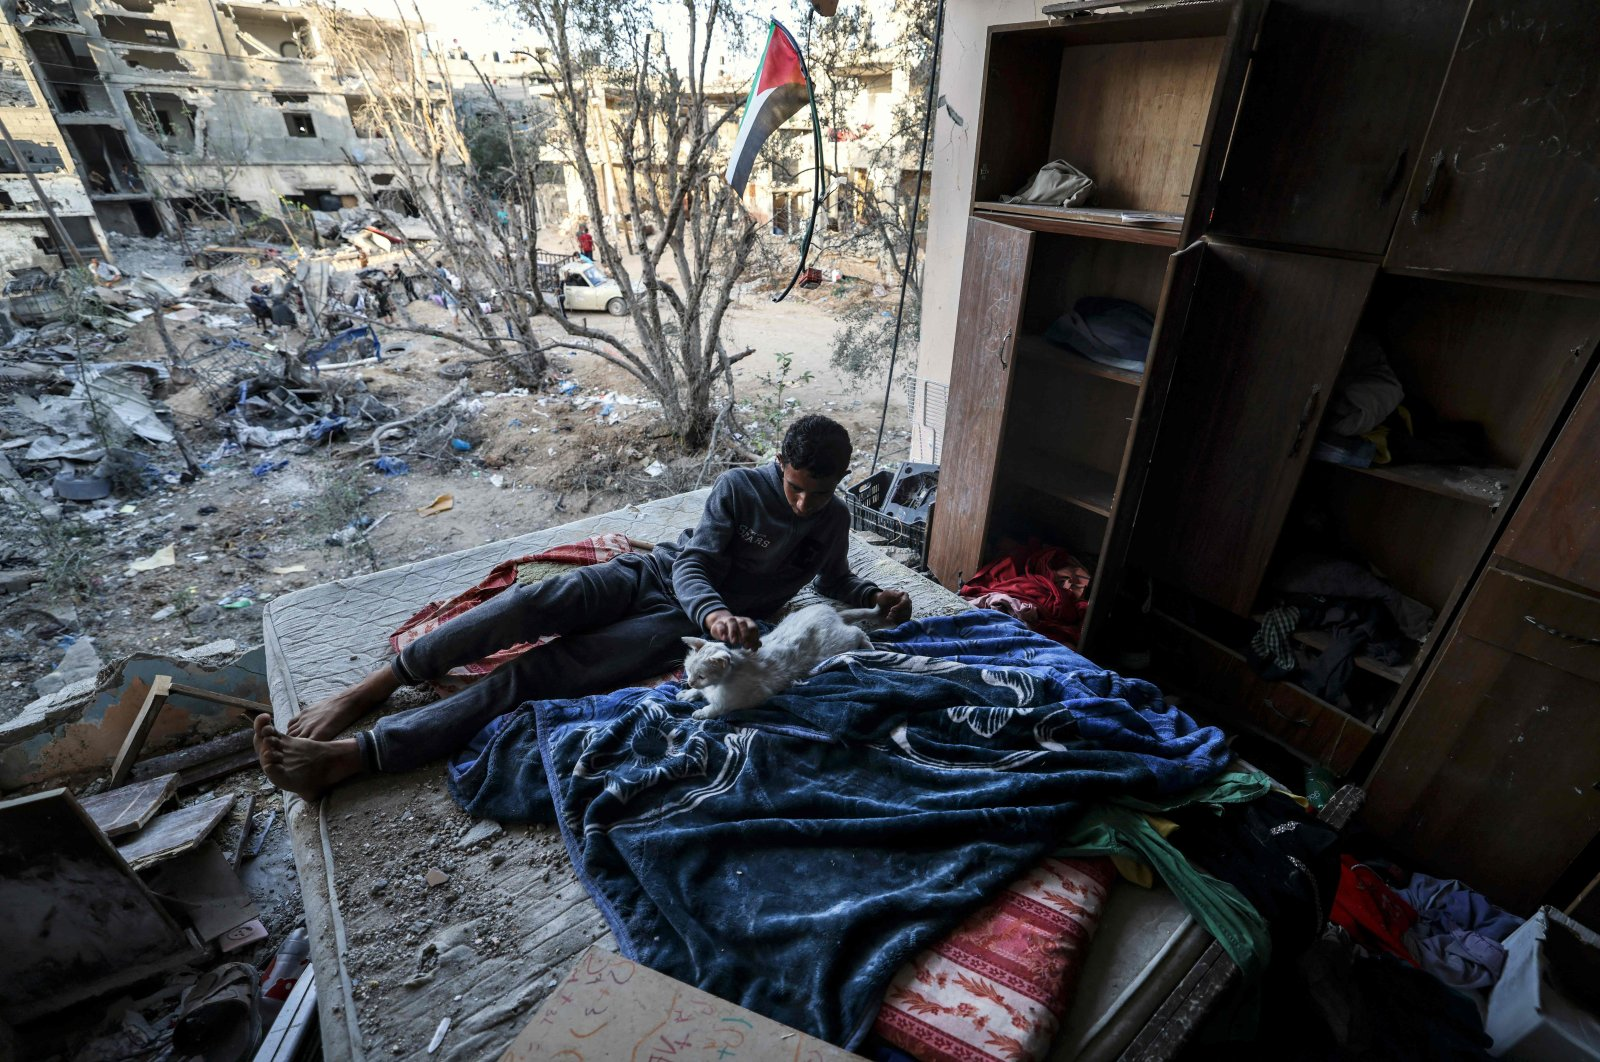 A young Palestinian pets a cat in a building heavily damaged during recent Israeli strikes more than a week after a cease-fire brought an end to 11 days of hostilities between Israel and Gaza rulers Hamas, Beit Hanun, northern Gaza Strip, June 1, 2021. (AFP Photo)